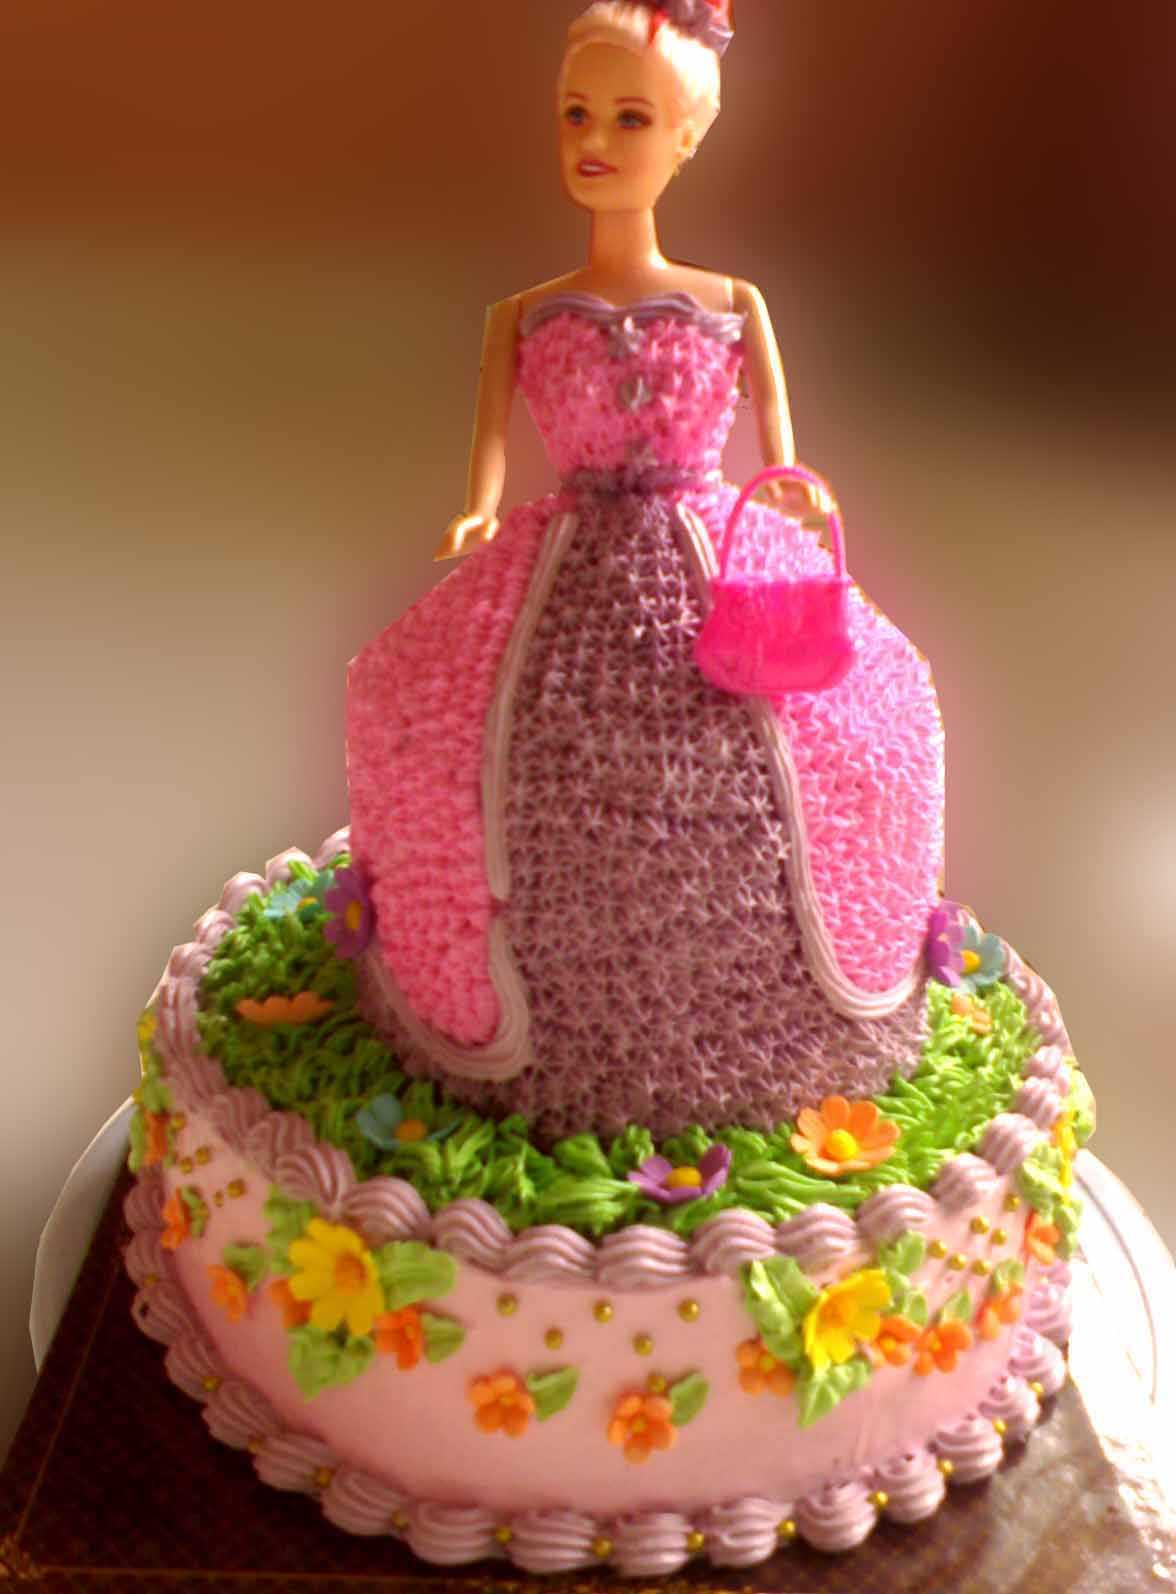 Barbie Cake HD Wallpapers HD Wallpapers Pics